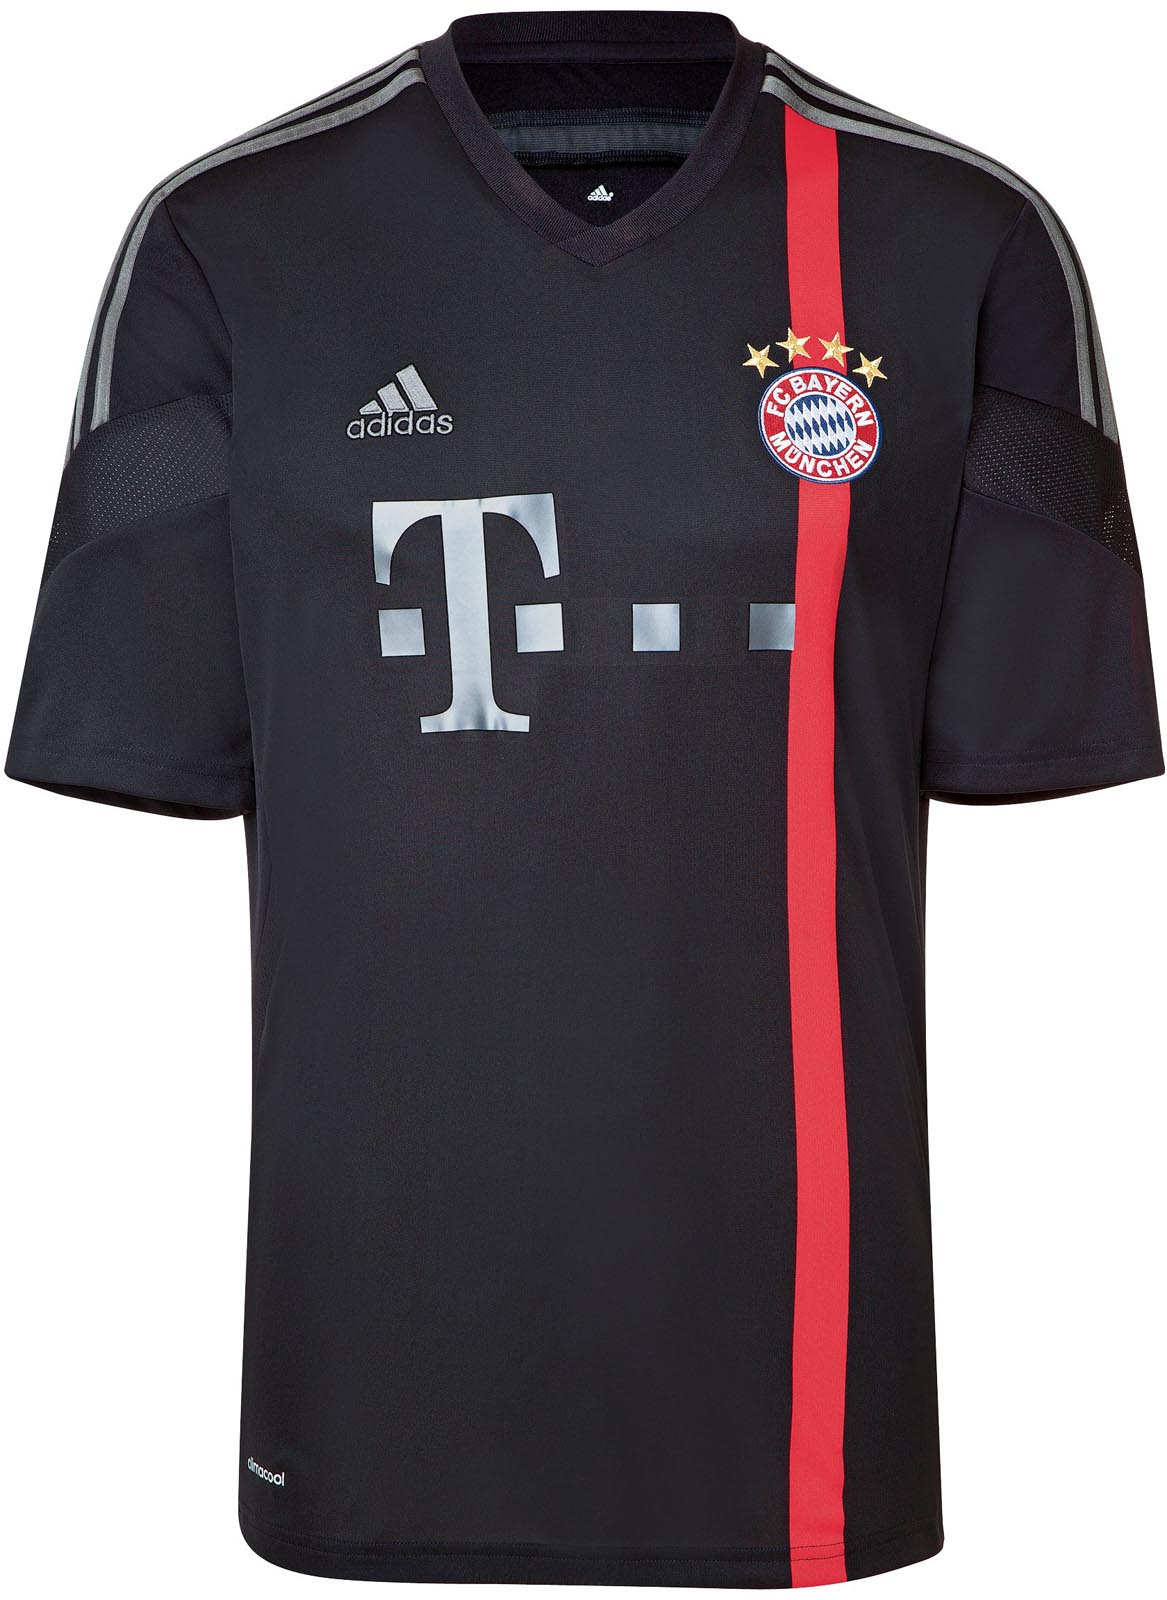 FC Bayern München 14-15 Home, Away and Third Kits